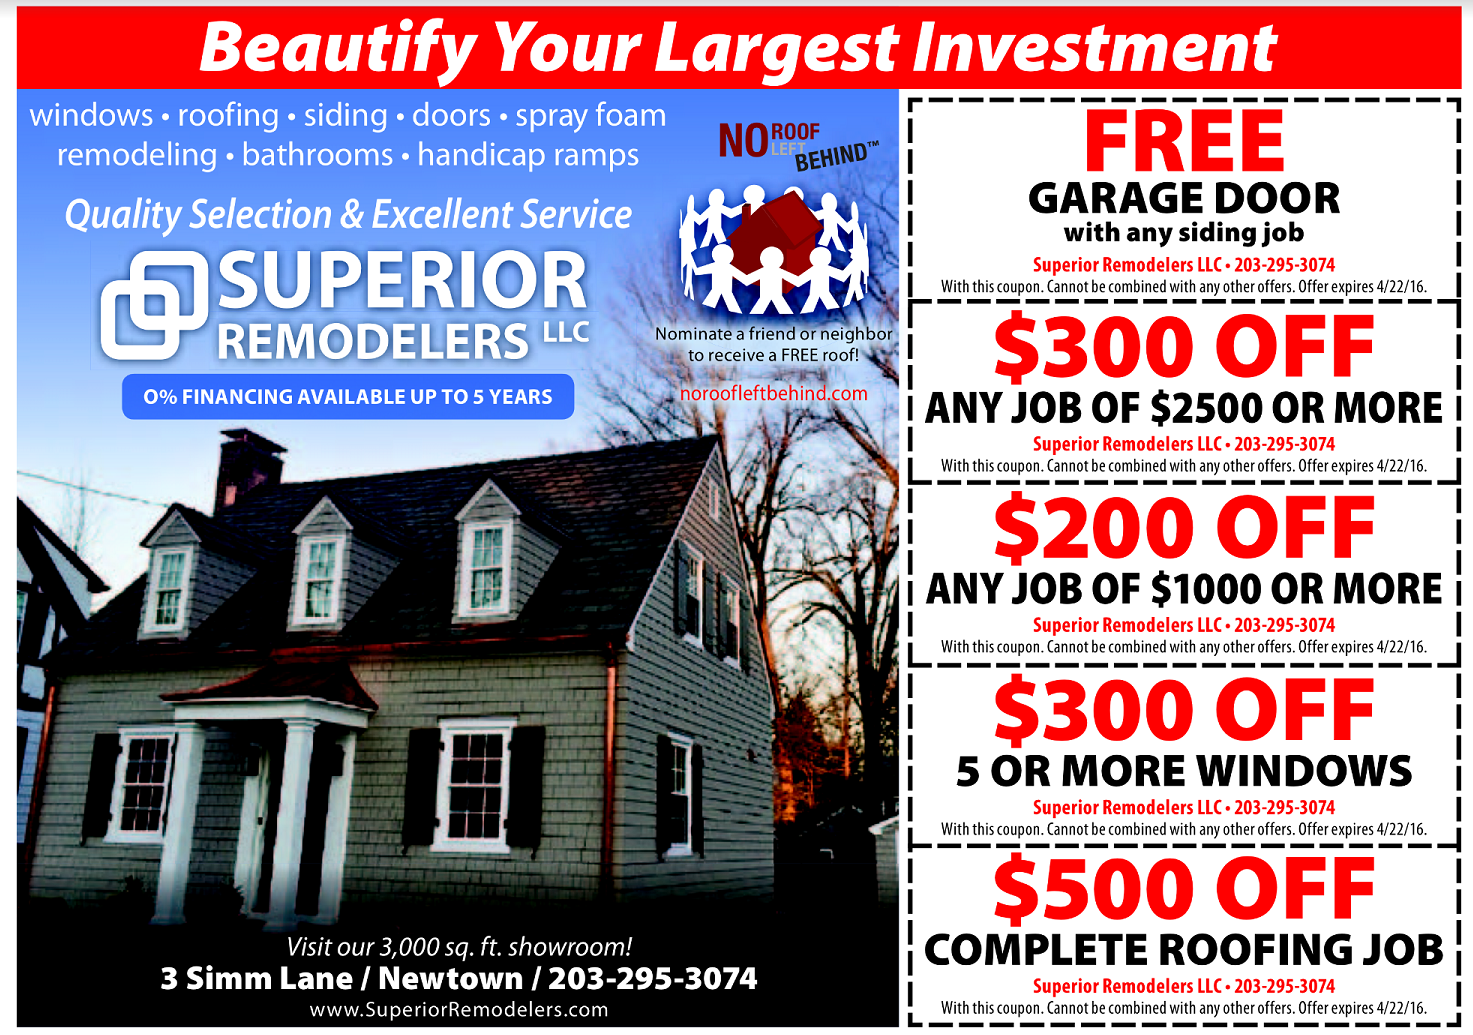 Superior Remodelers April Specials